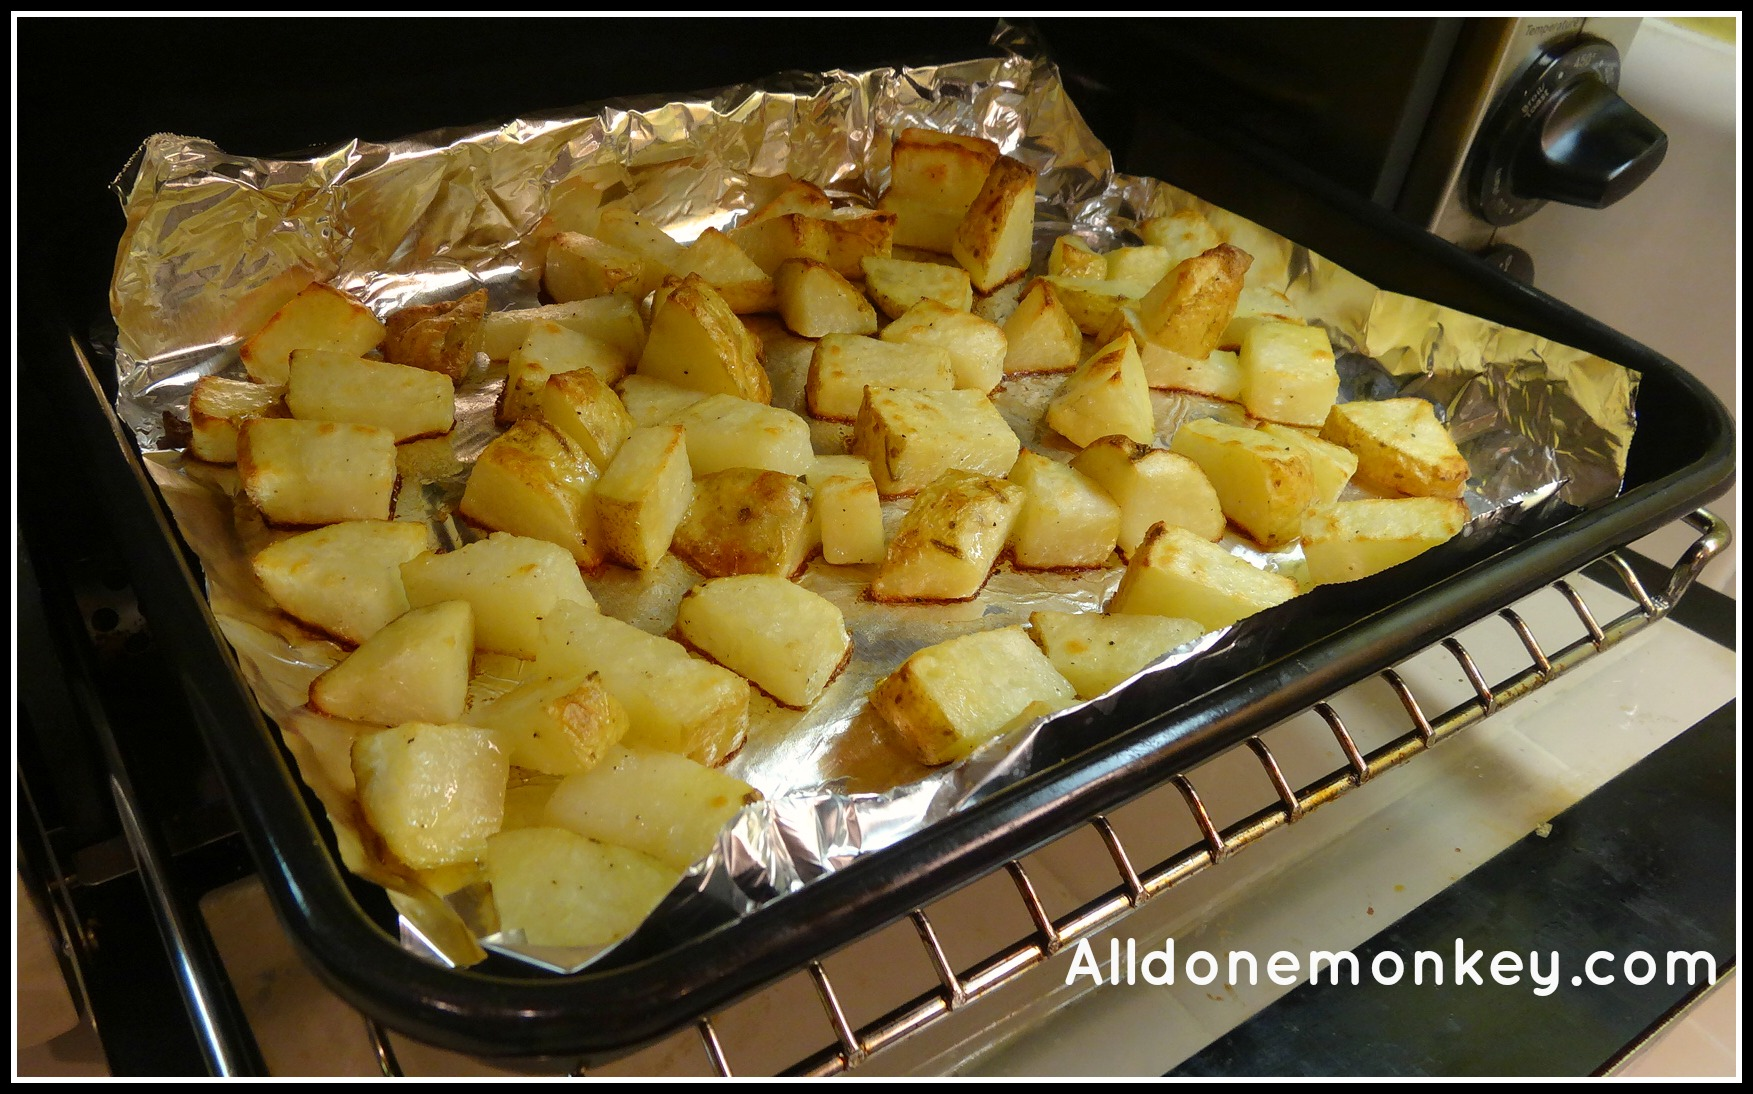 Magic Rice and Oven Potatoes - Alldonemonkey on Multicultural Kid Blogs